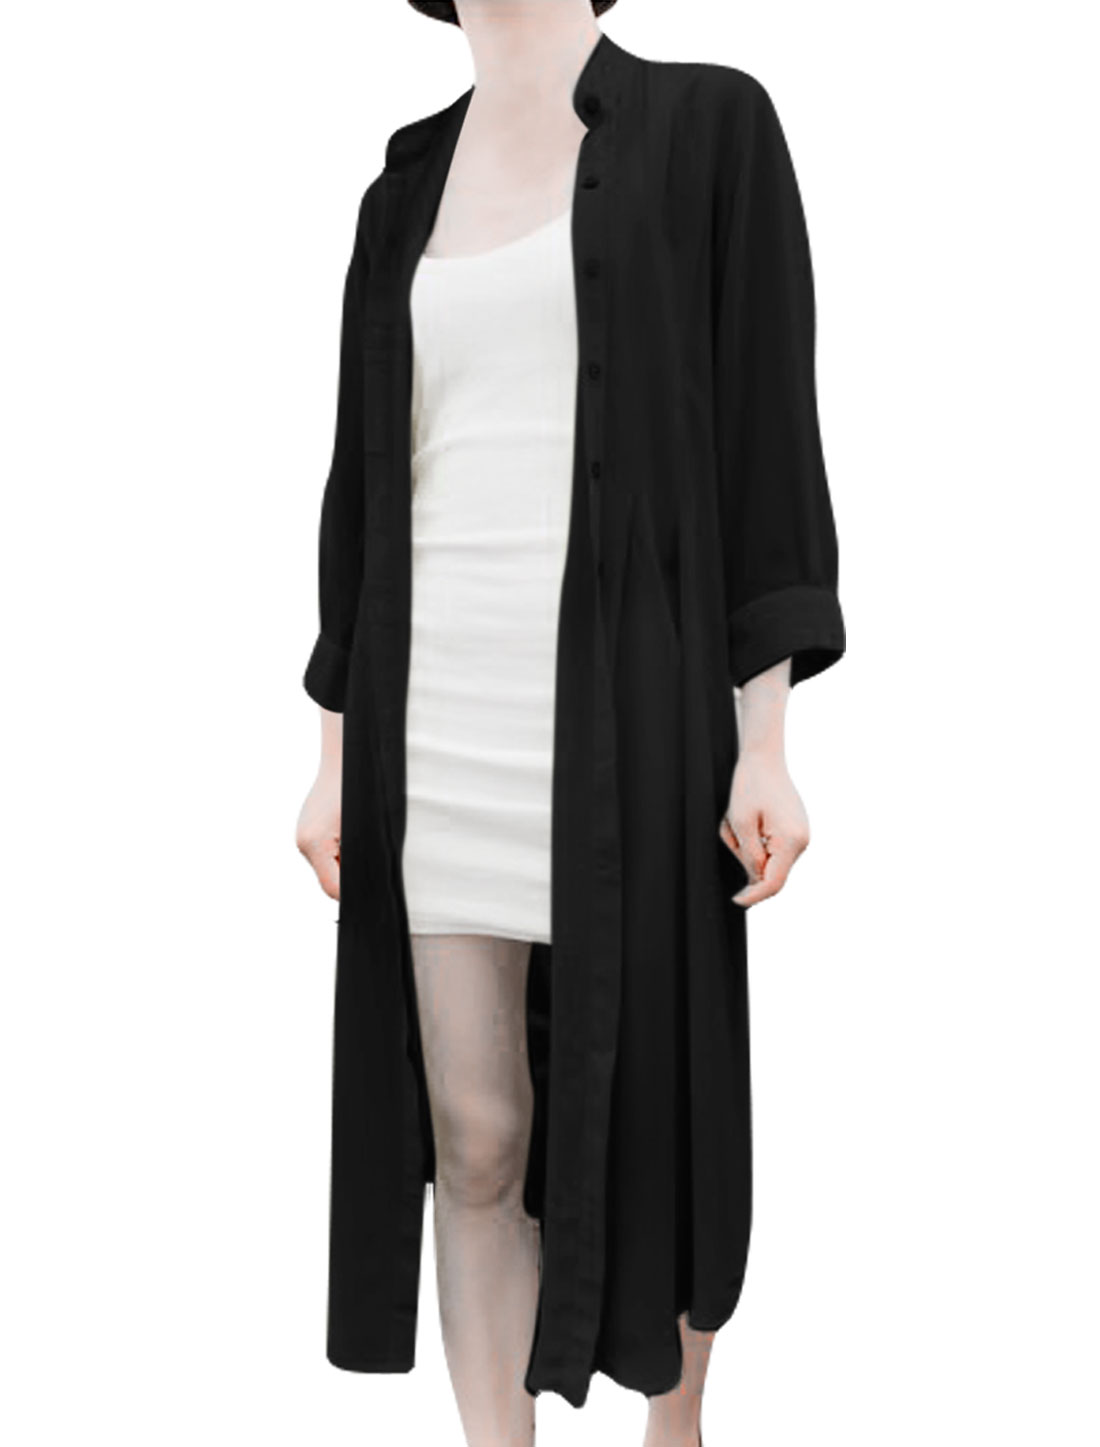 Ladies Chiffon Stand Collar Buttoned Front Long Cardigan Black XS